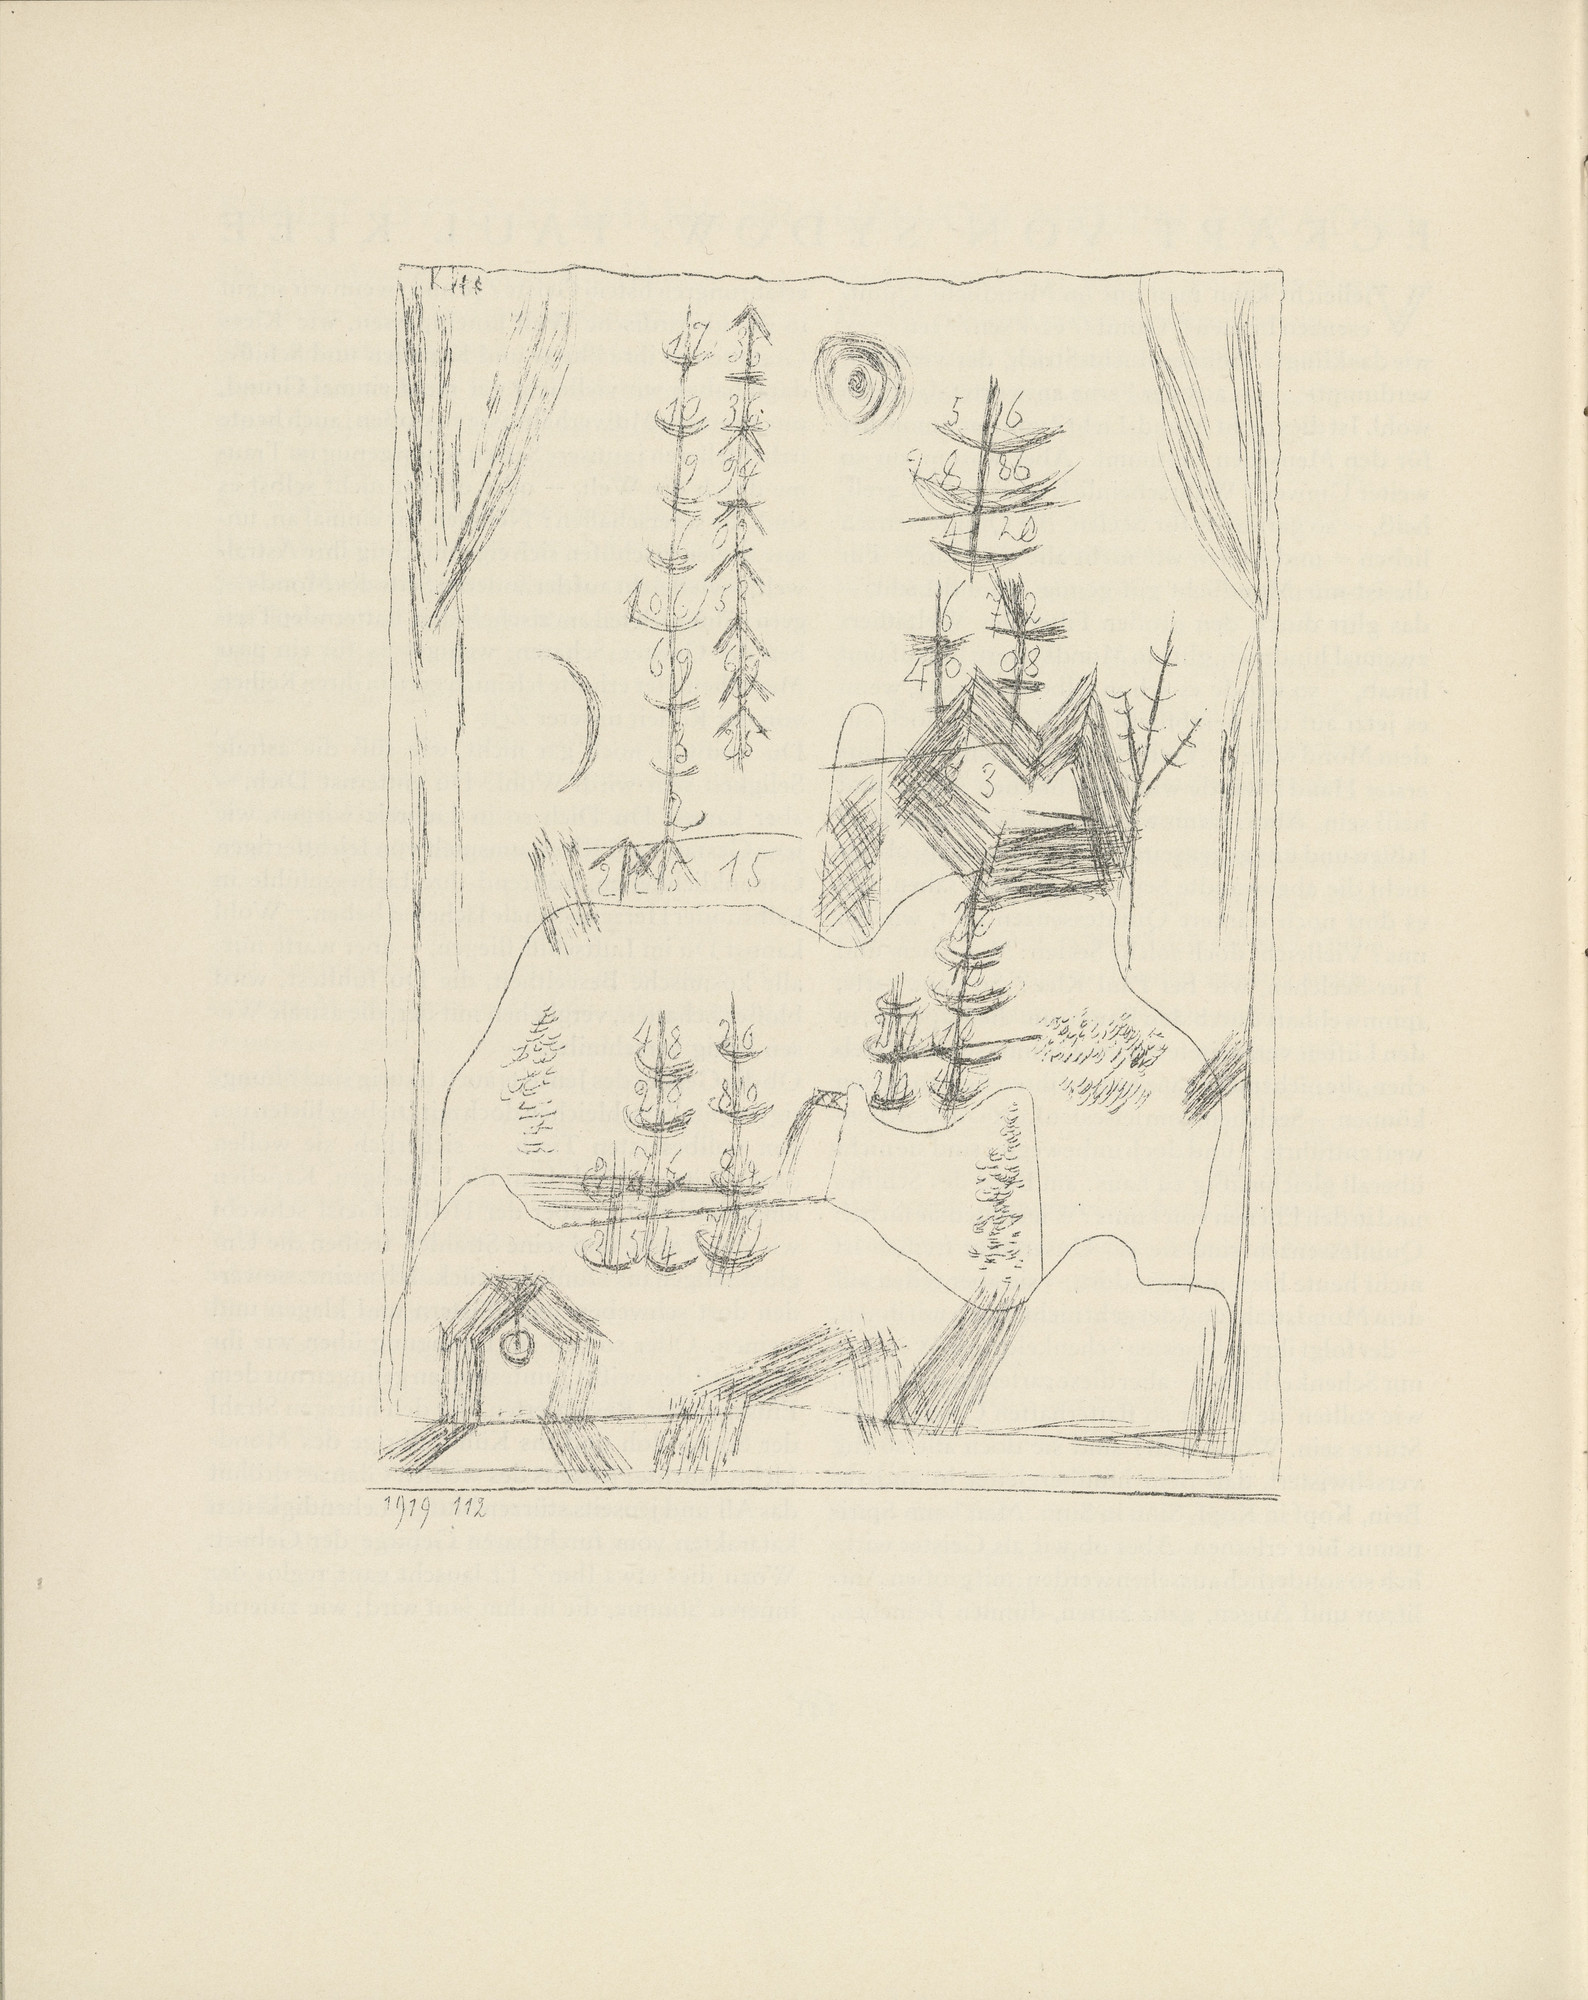 Paul Klee. Forest (Wald) (plate, page 142) from the periodical Münchner Blätter für Dichtung und Graphik, vol. 1, no. 9 (September 1919). 1919